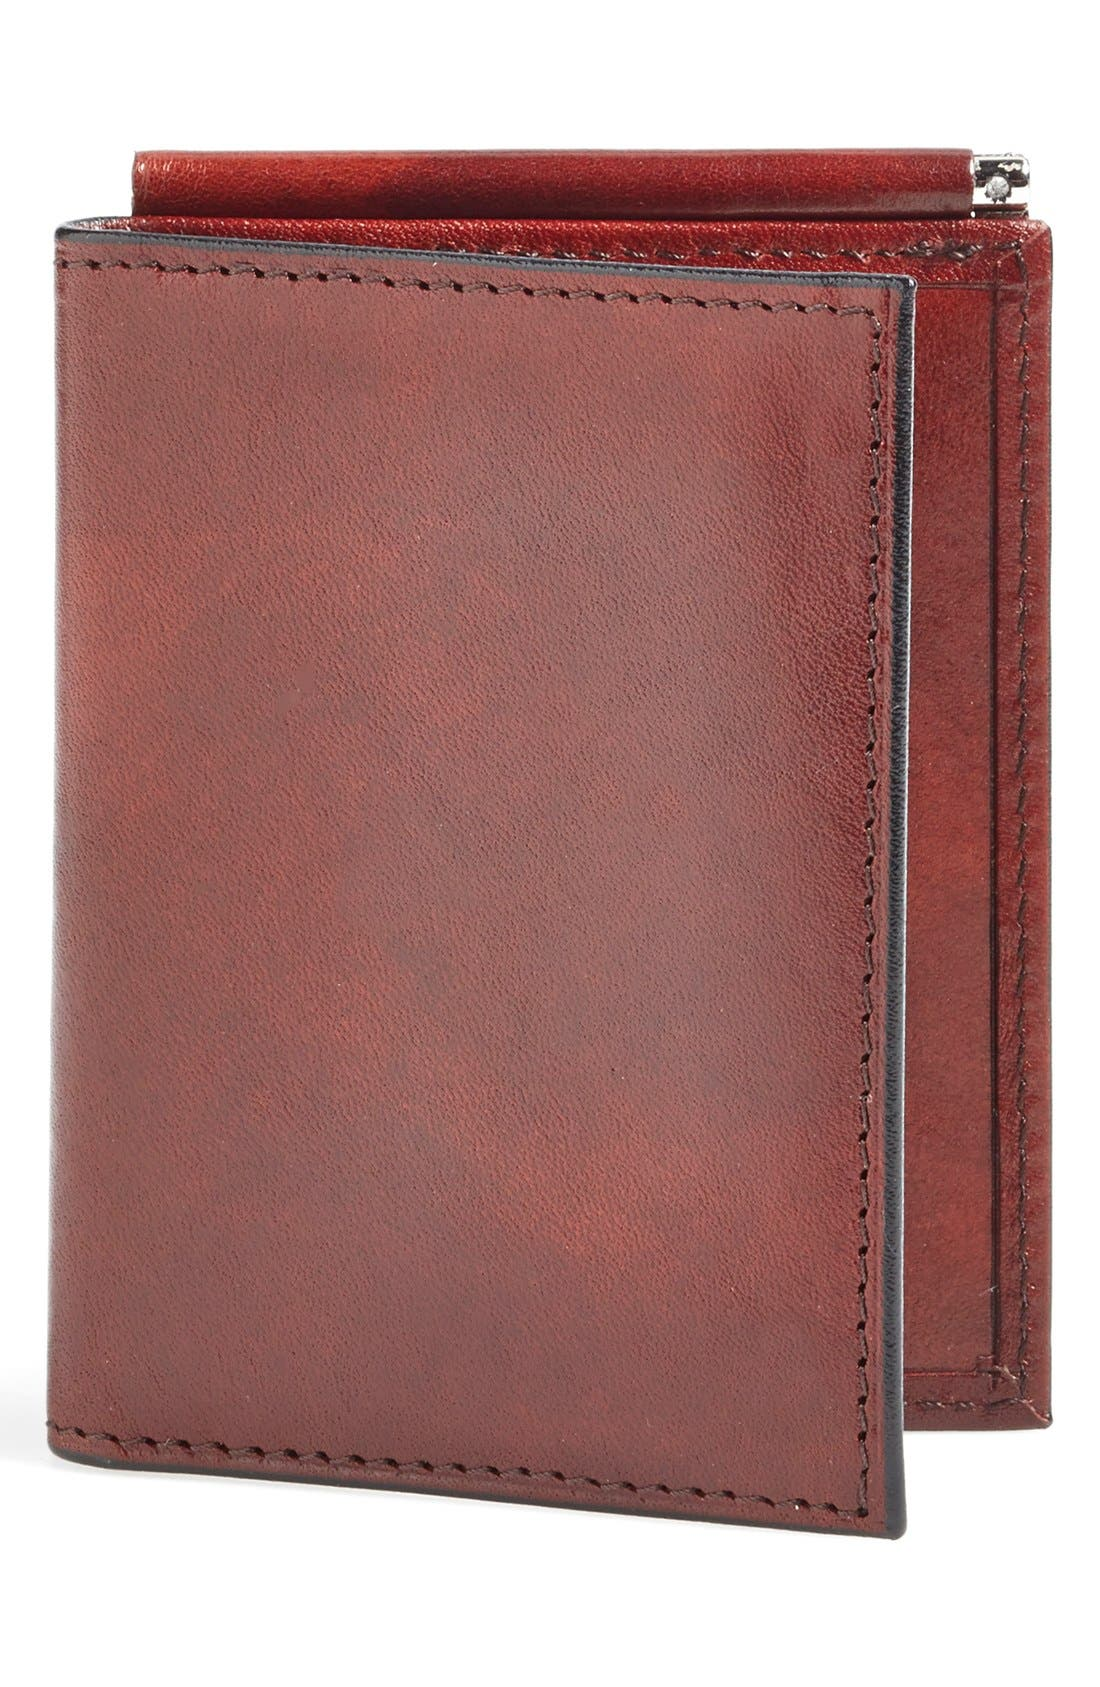 'Old Leather' Money Clip Wallet,                         Main,                         color, Dark Brown